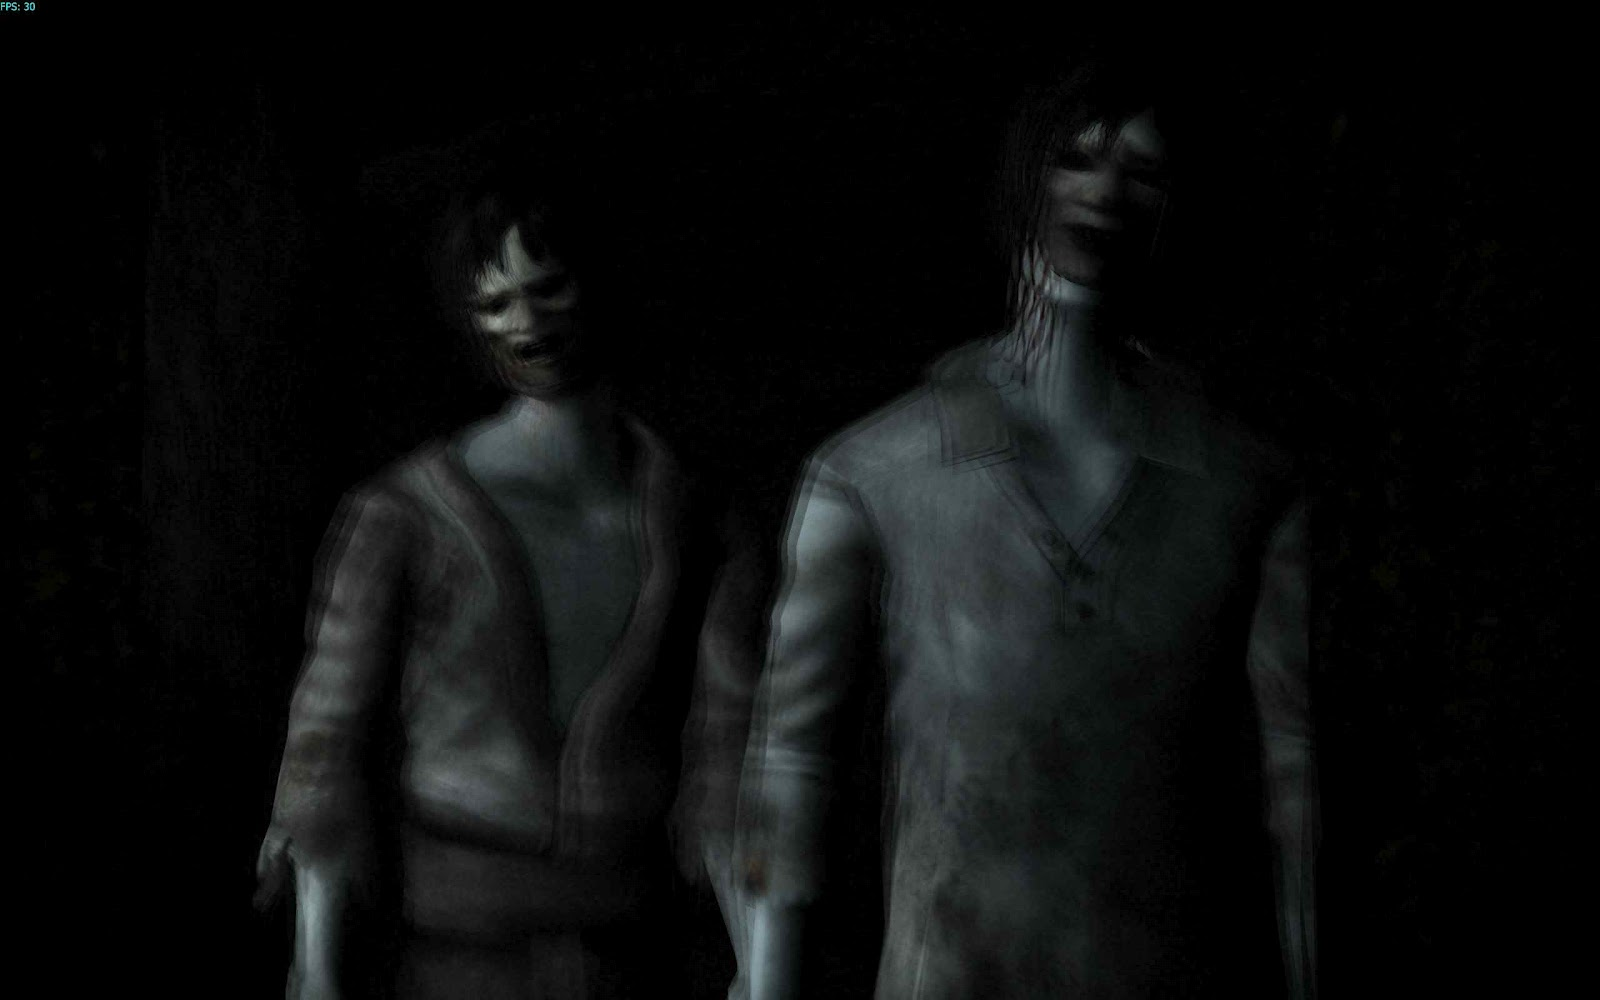 More screenshots taken from Fatal Frame 4 | D.S の Space